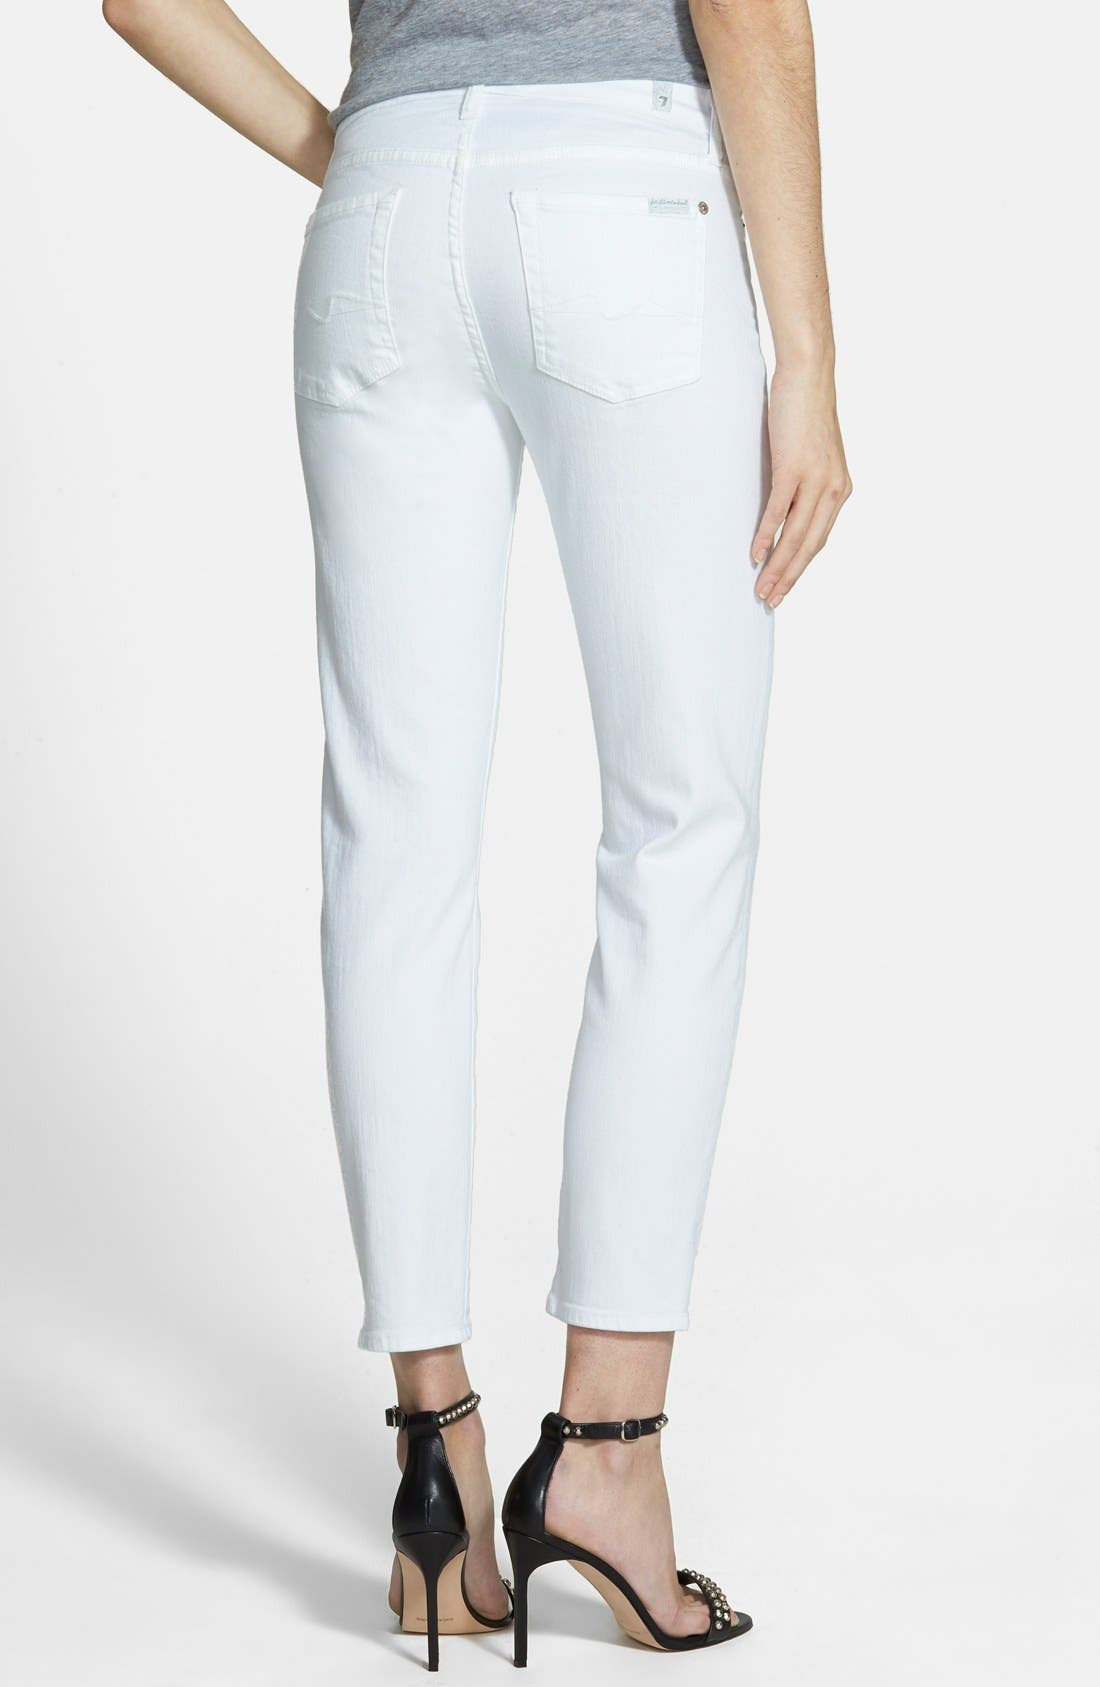 'Kimmie' Crop Skinny Jeans,                             Alternate thumbnail 2, color,                             Clean White